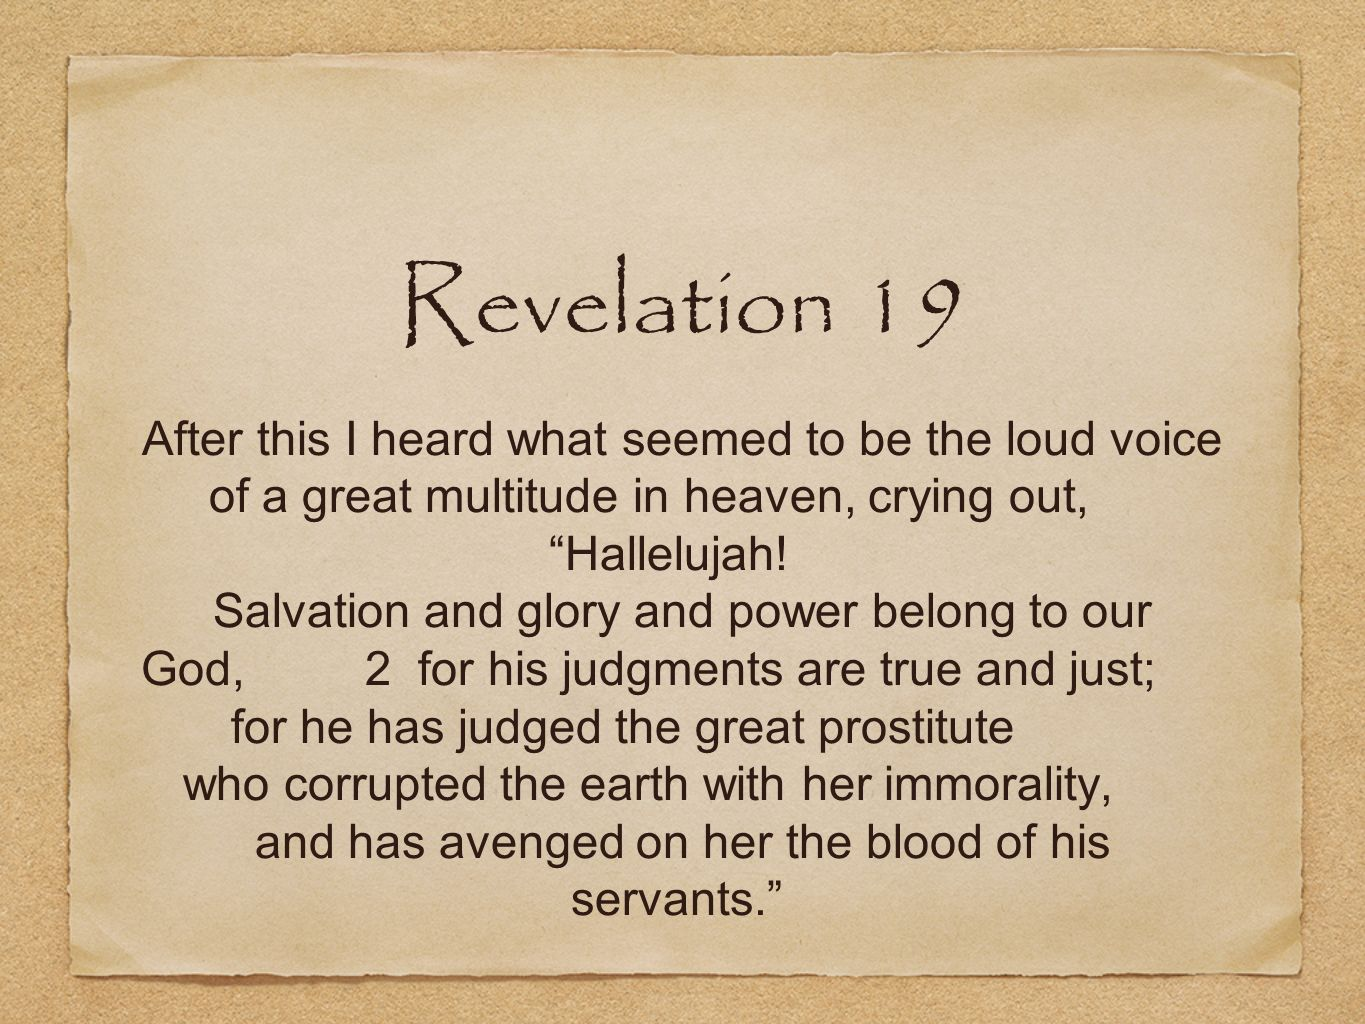 Revelation 19 After this I heard what seemed to be the loud voice of a great multitude in heaven, crying out,